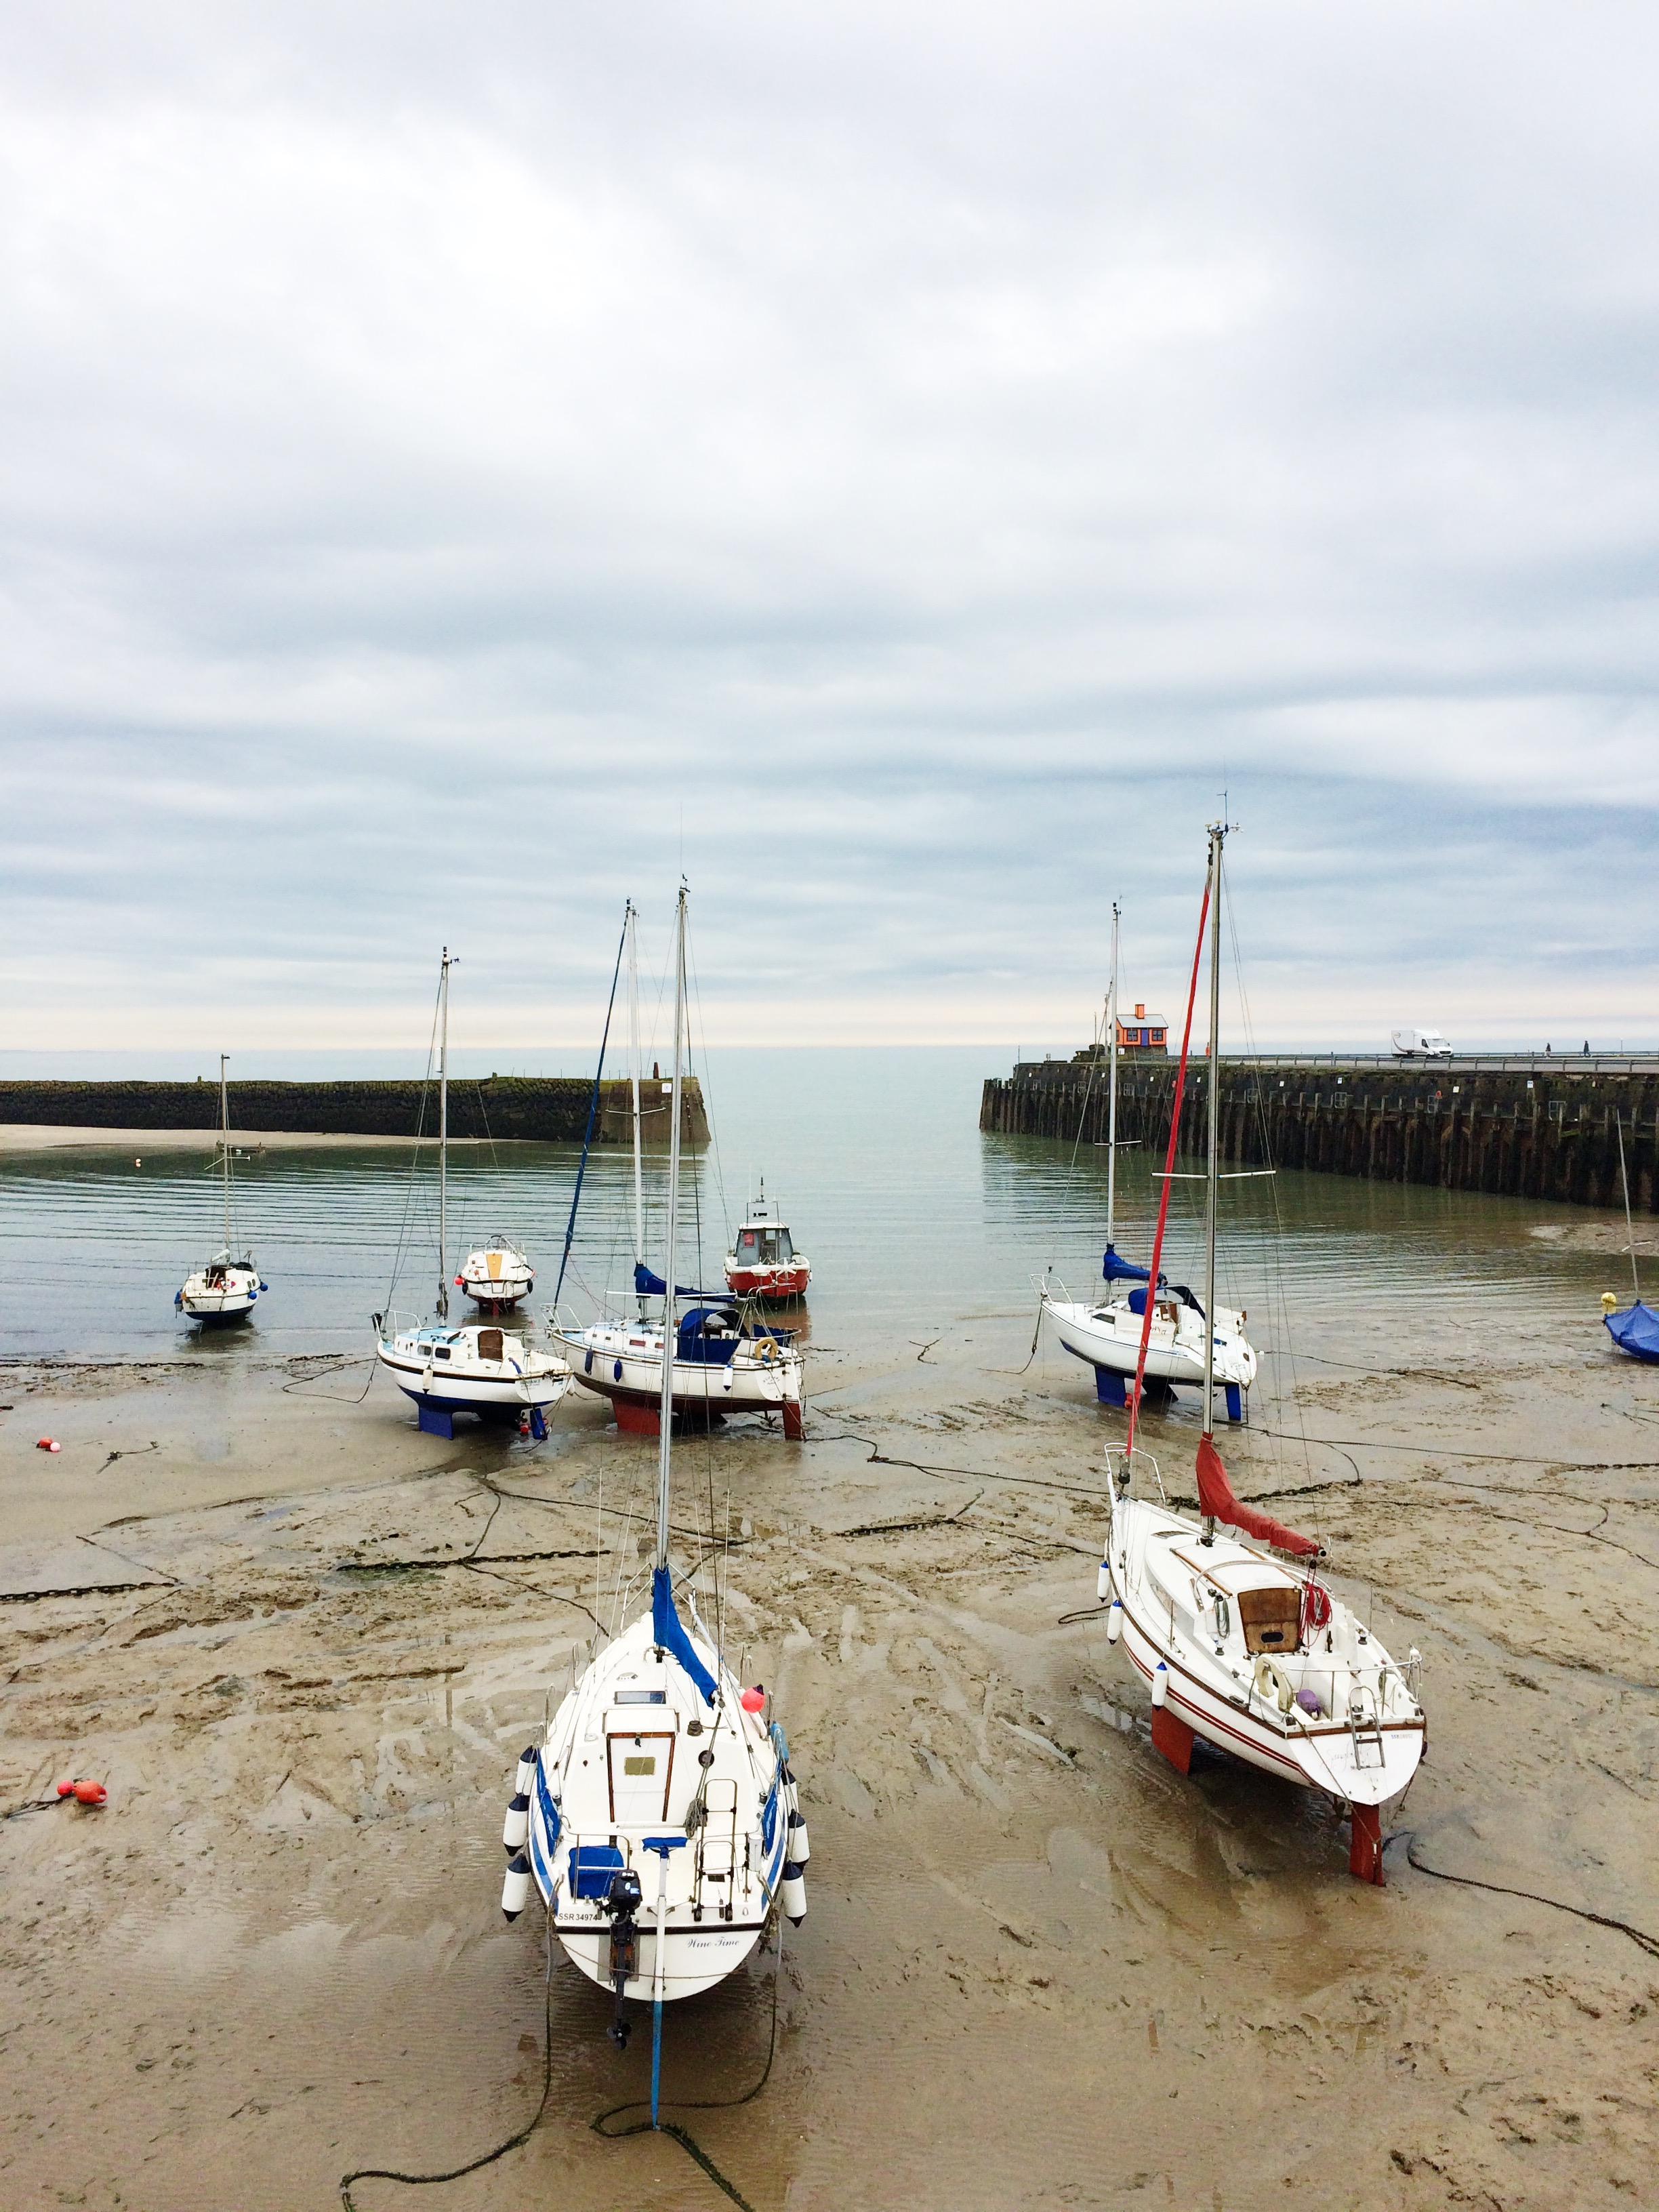 The habour at low tide by Small Acorns.JPG